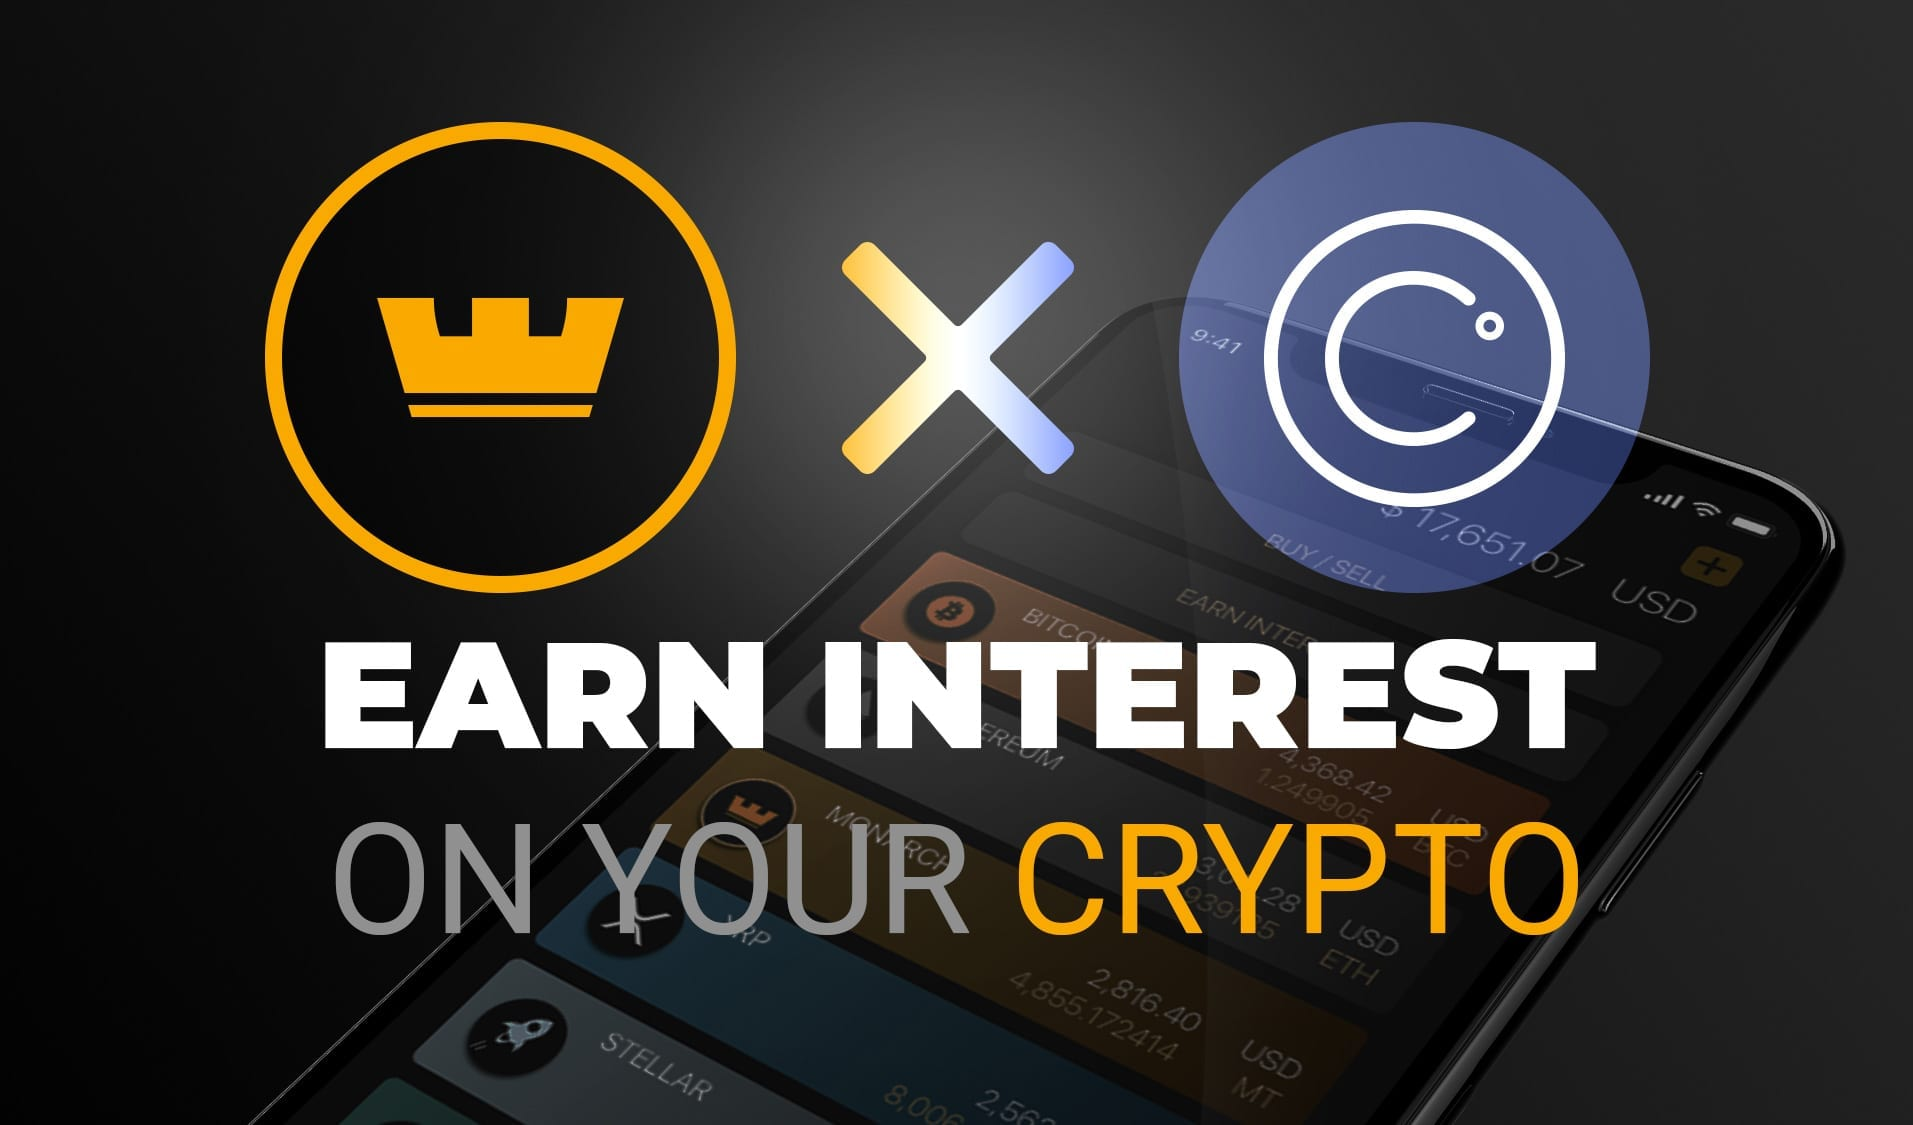 Celsius partners with Monarch to enable in-wallet interest earning